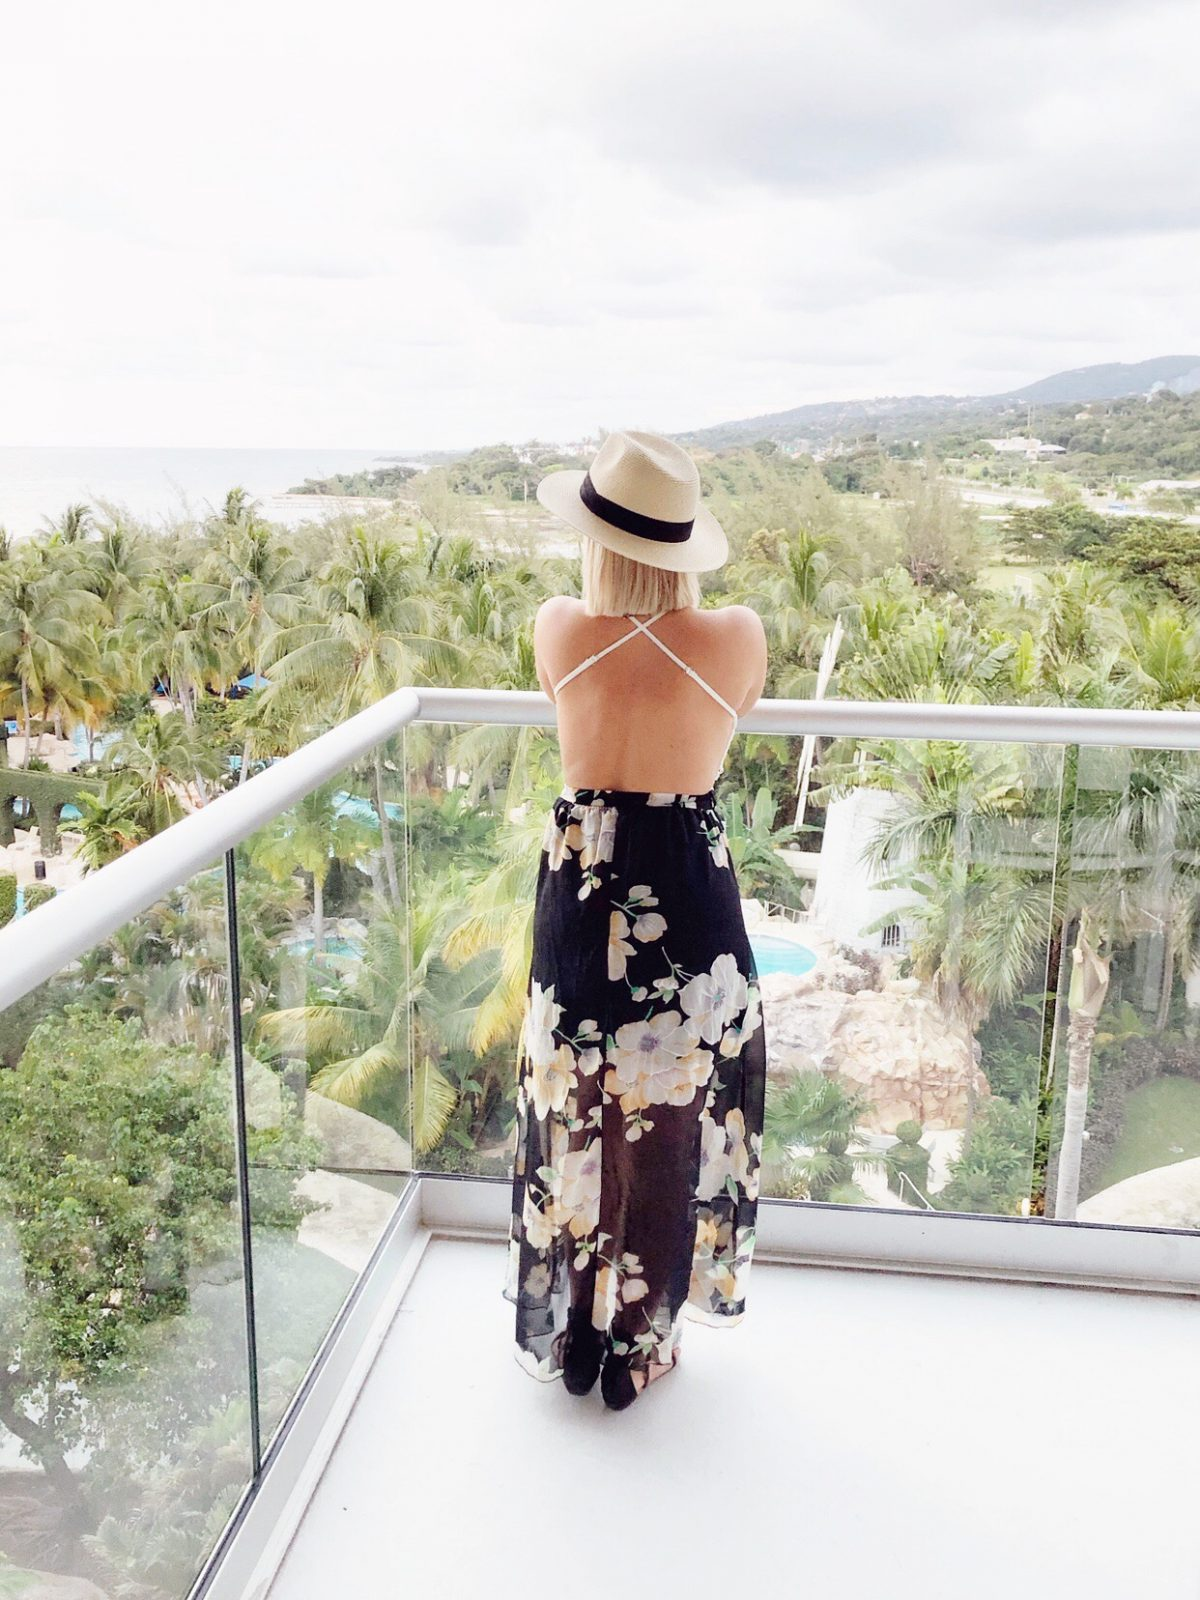 Home and lifestyle blogger Liz Fourez shares a collection of her favorite affordable clothing and accessory finds perfect for a beach vacation!